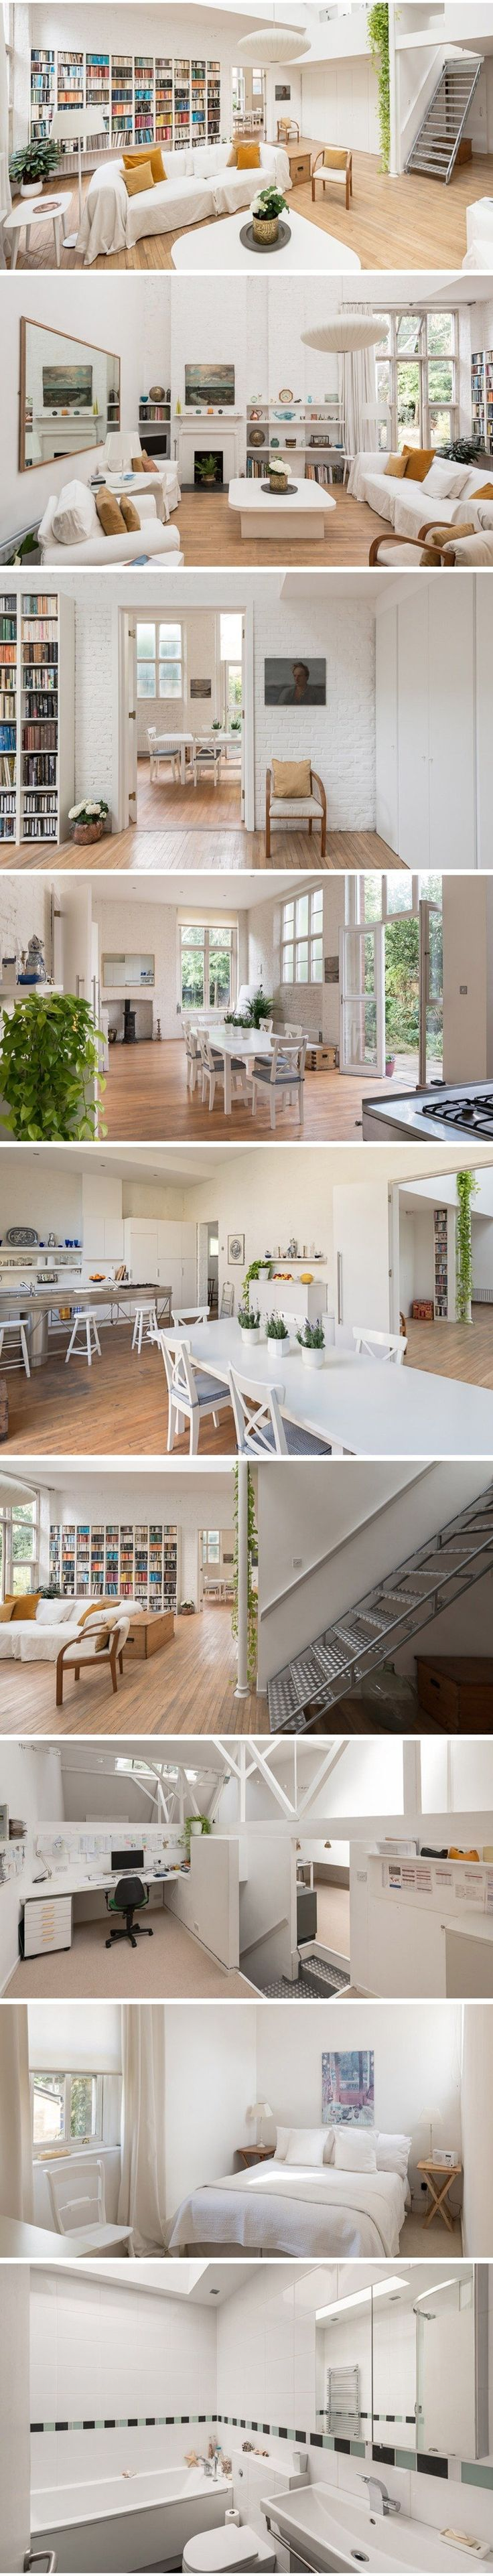 83 best house design images on pinterest my house living room and